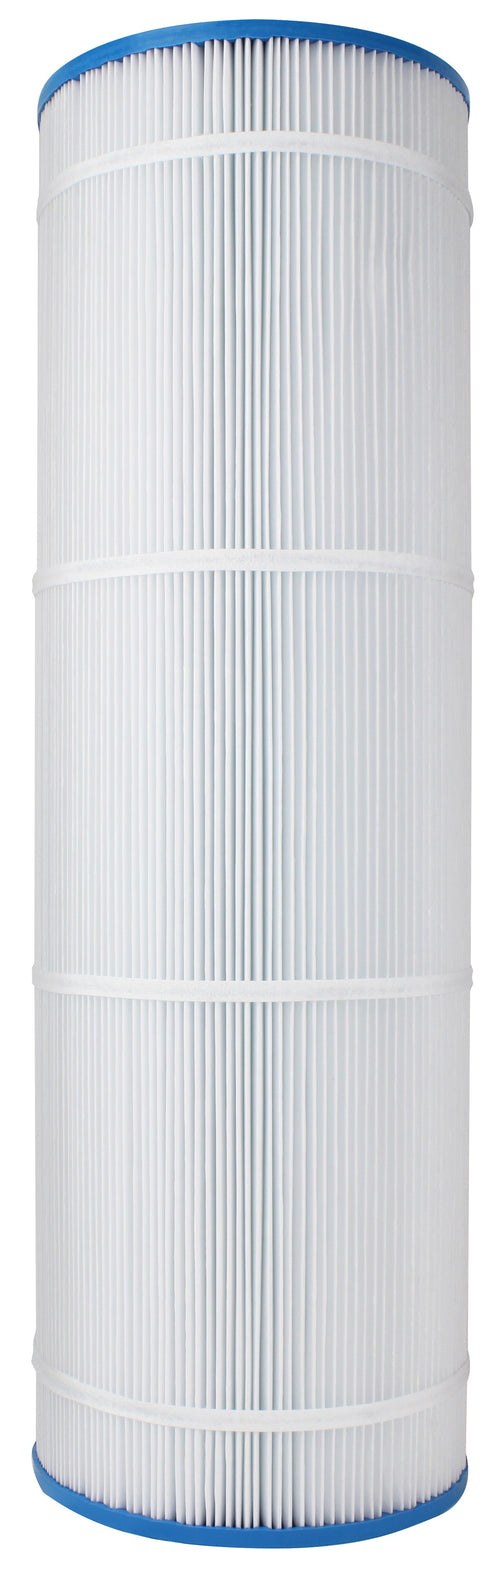 Replaces Unicel C-8417, Pleatco PA175 • Pool & Spa Filter Cartridge-Filter Cartridge-FilterDeal.com